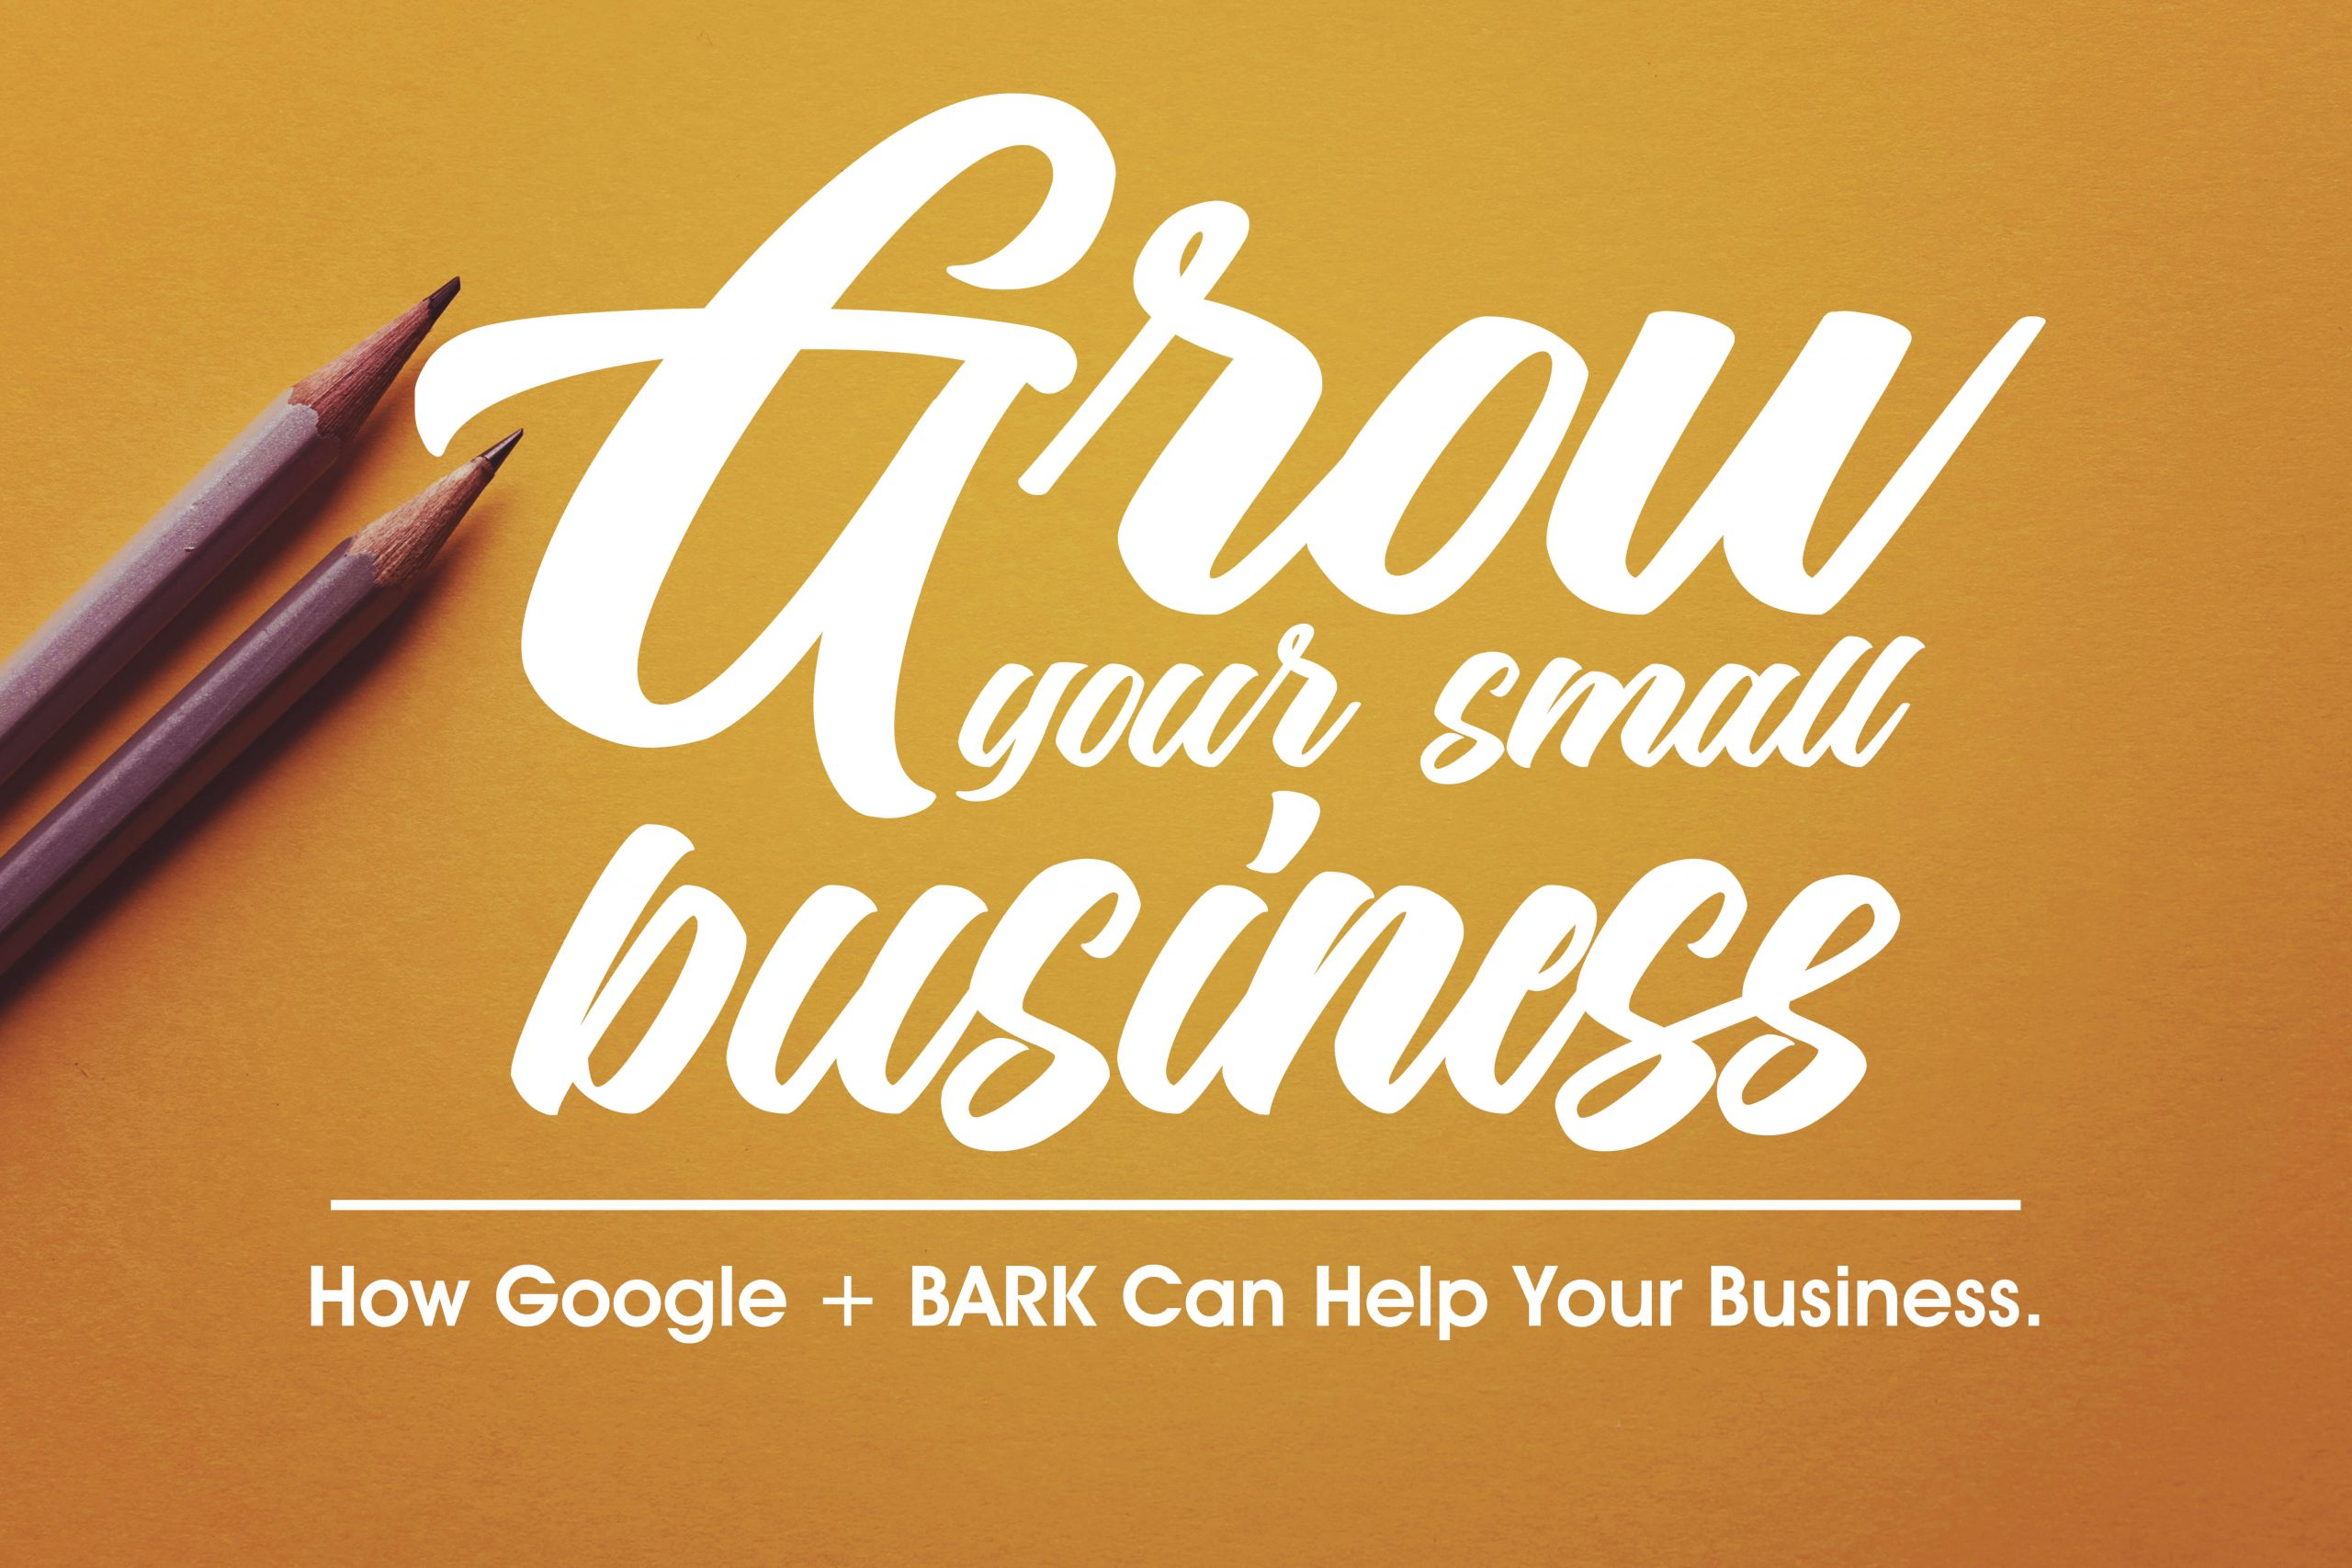 How Do Google Ads Help Small Business Grow?